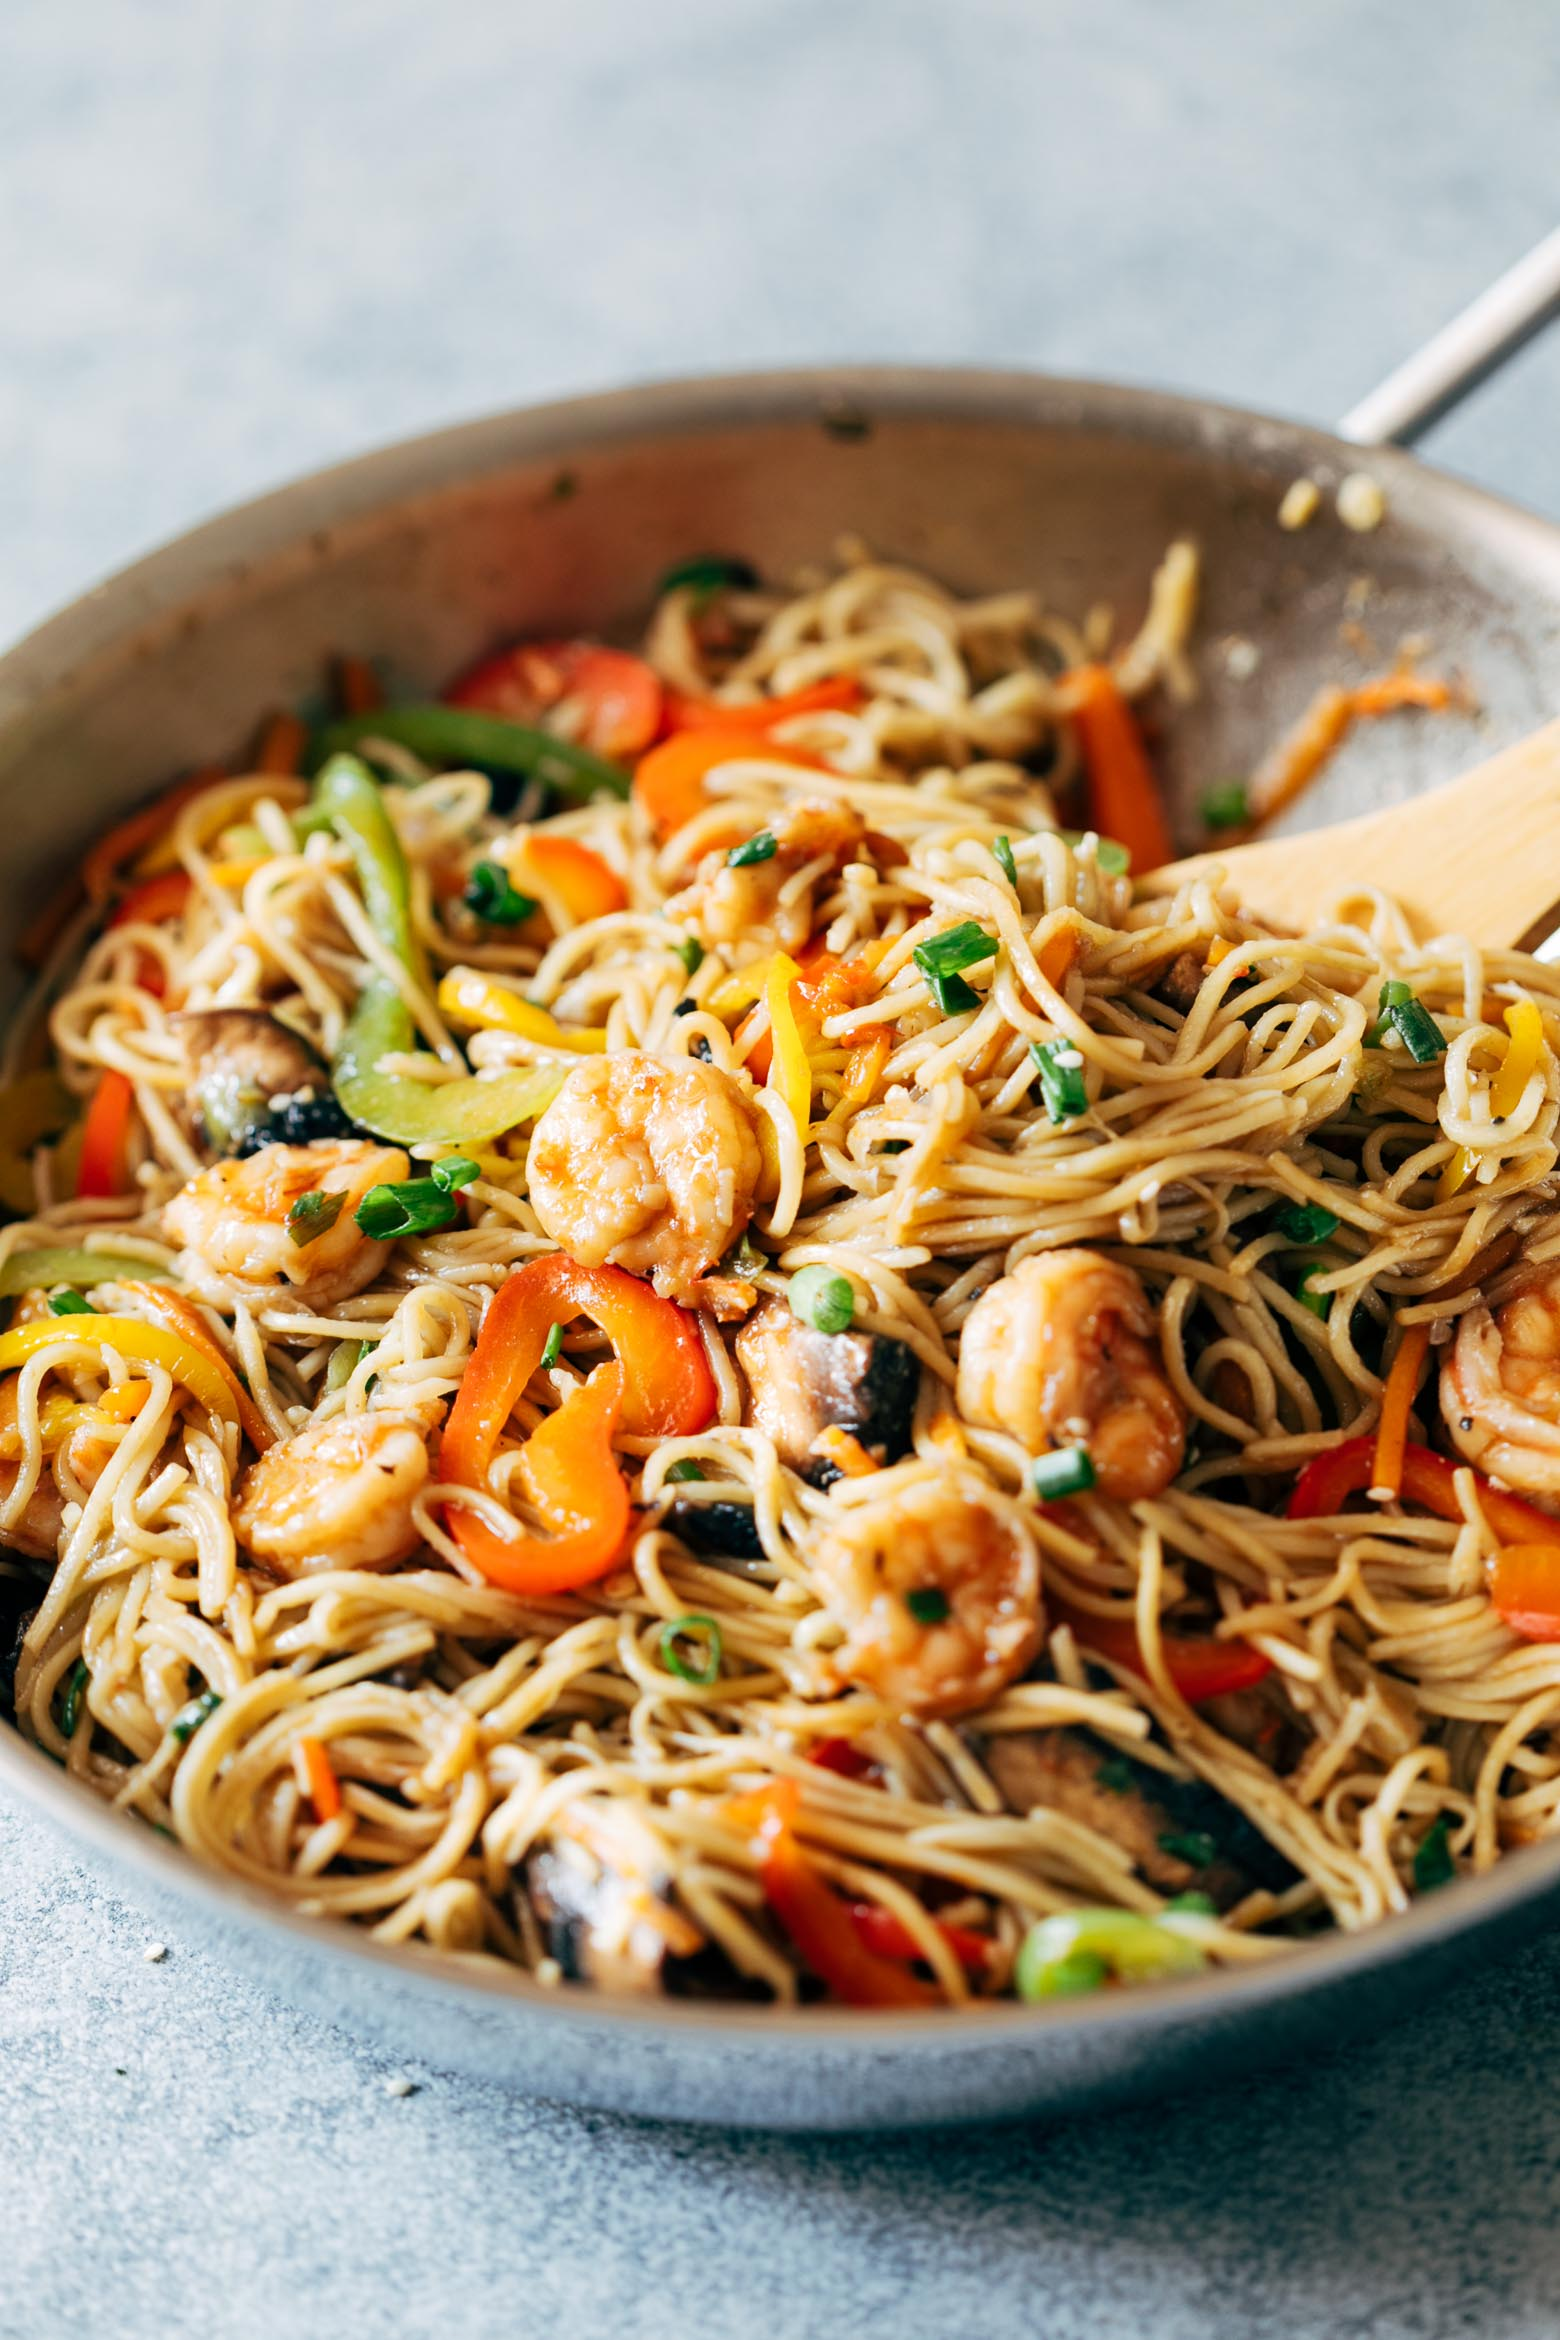 Shrimp Chow Mein is an easy, one pot meal thats loaded with shrimp, fresh vegetables and flavour. Its the best way to get weeknight dinner on the table in under 30 minutes and is better than takeout!